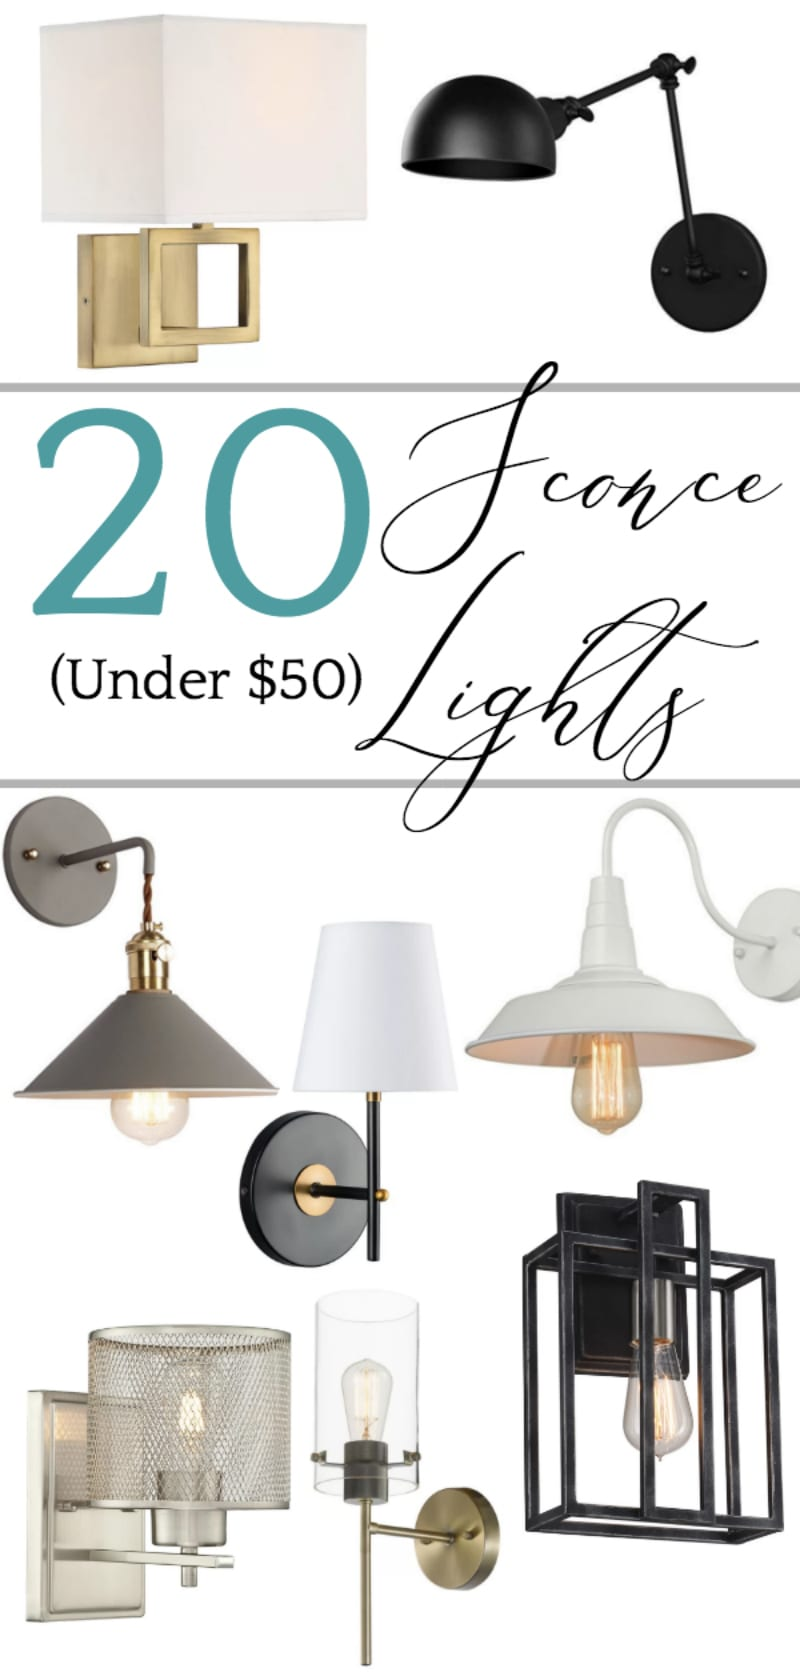 A budget shopping guide with 20 sconce lights for a tight budget under $50 with DIY ideas for how to use them even without hiring an electrician.